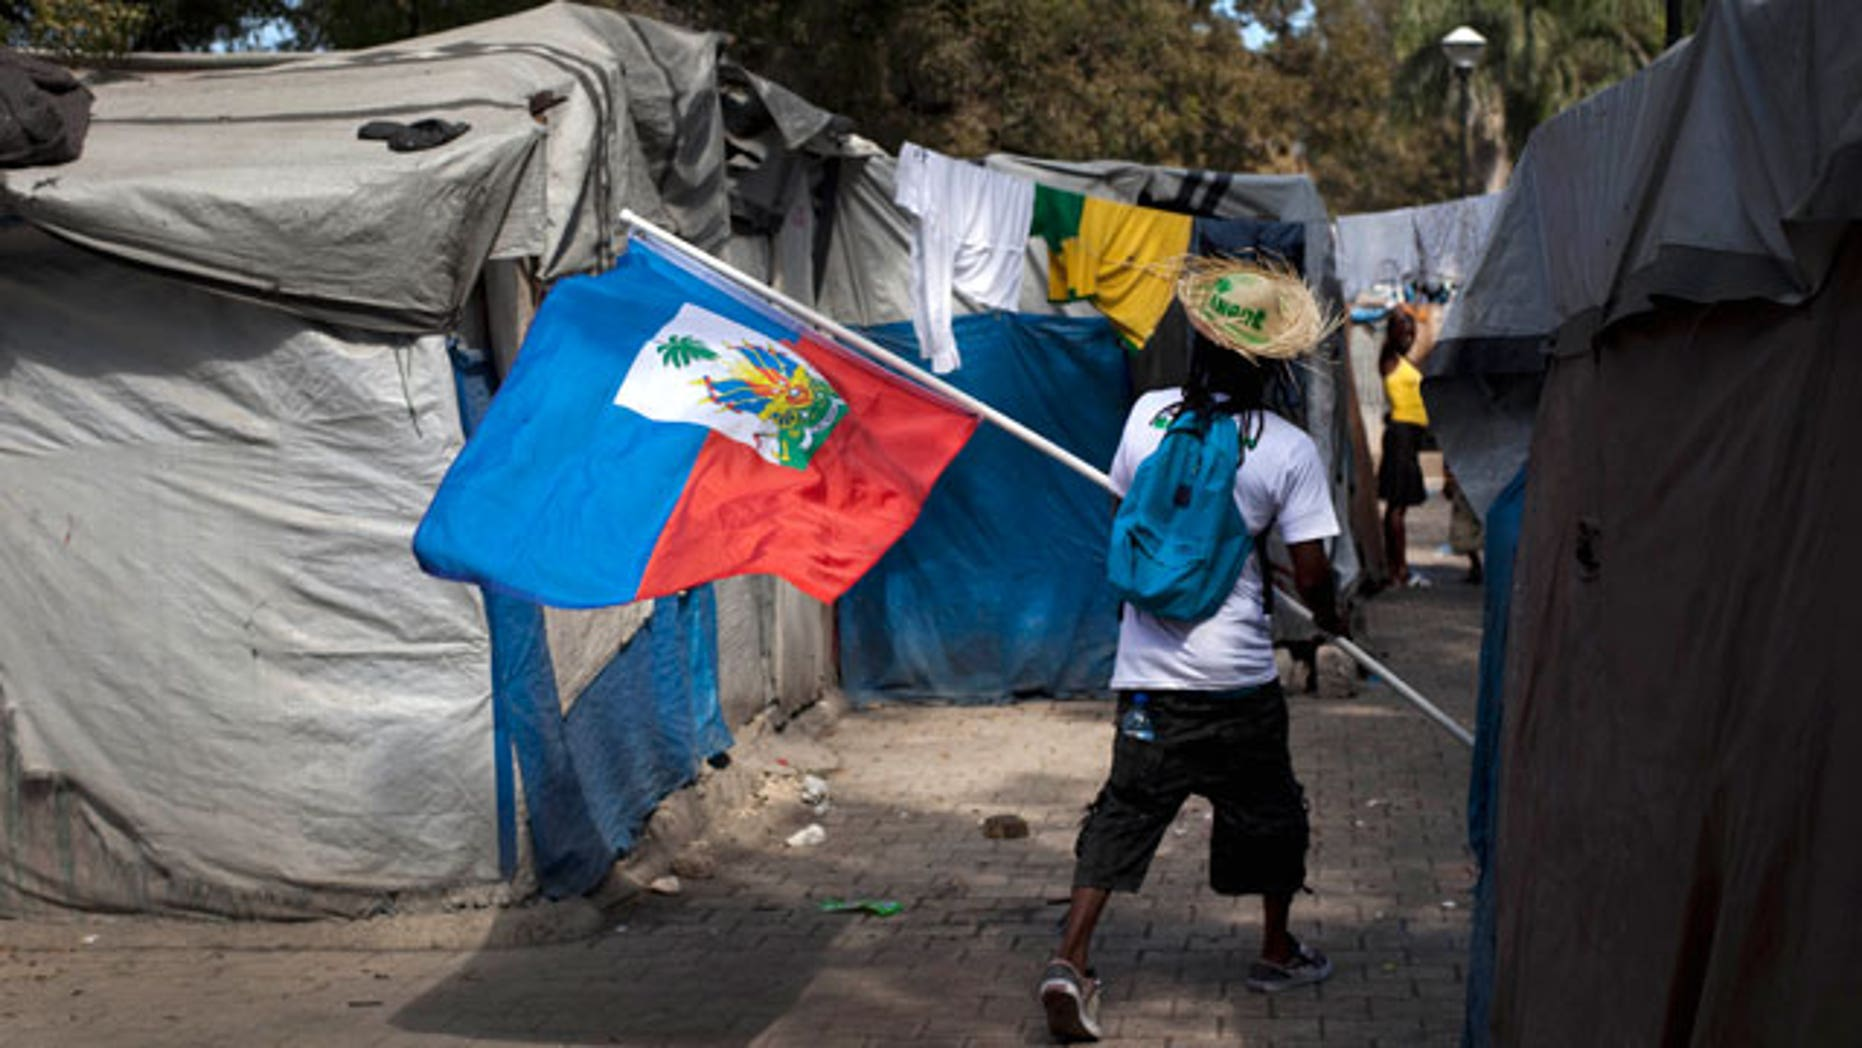 Jan. 11, 2012: A demonstrator carrying a Haitian flag walks through the Champ de Mars camp, across the street from the collapsed National Palace, during a protest to demand new housing, in Port-au-Prince, Haiti.